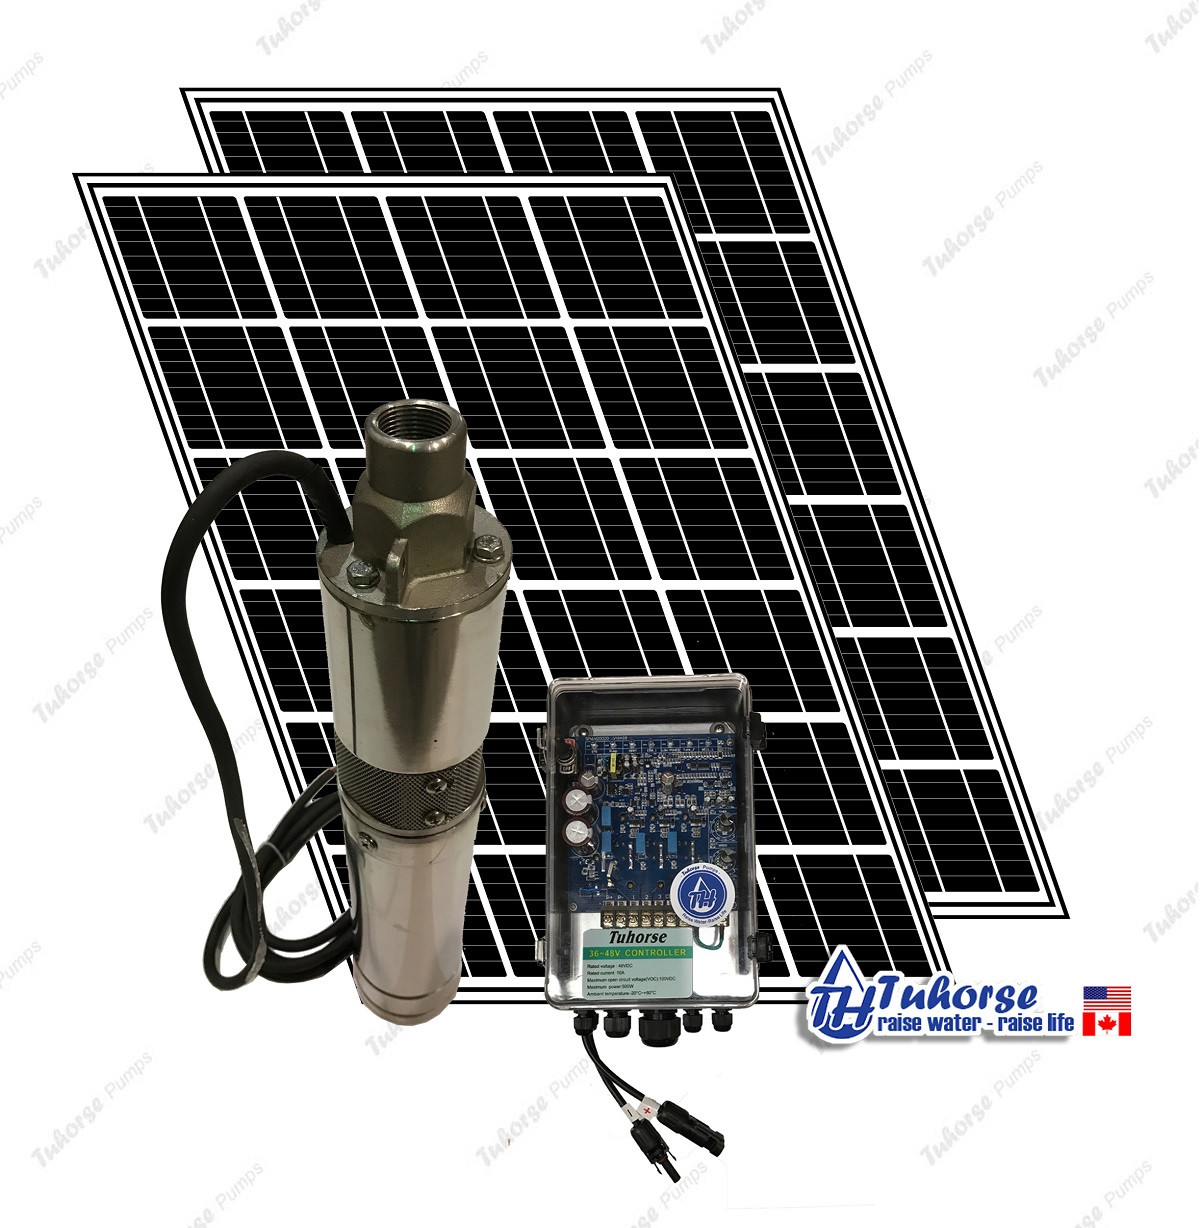 medium resolution of solar water pumps 500w 4gpm deep well pump tuhorse wiring 4 wire 220 to 3 prong plug as well solar panel prices